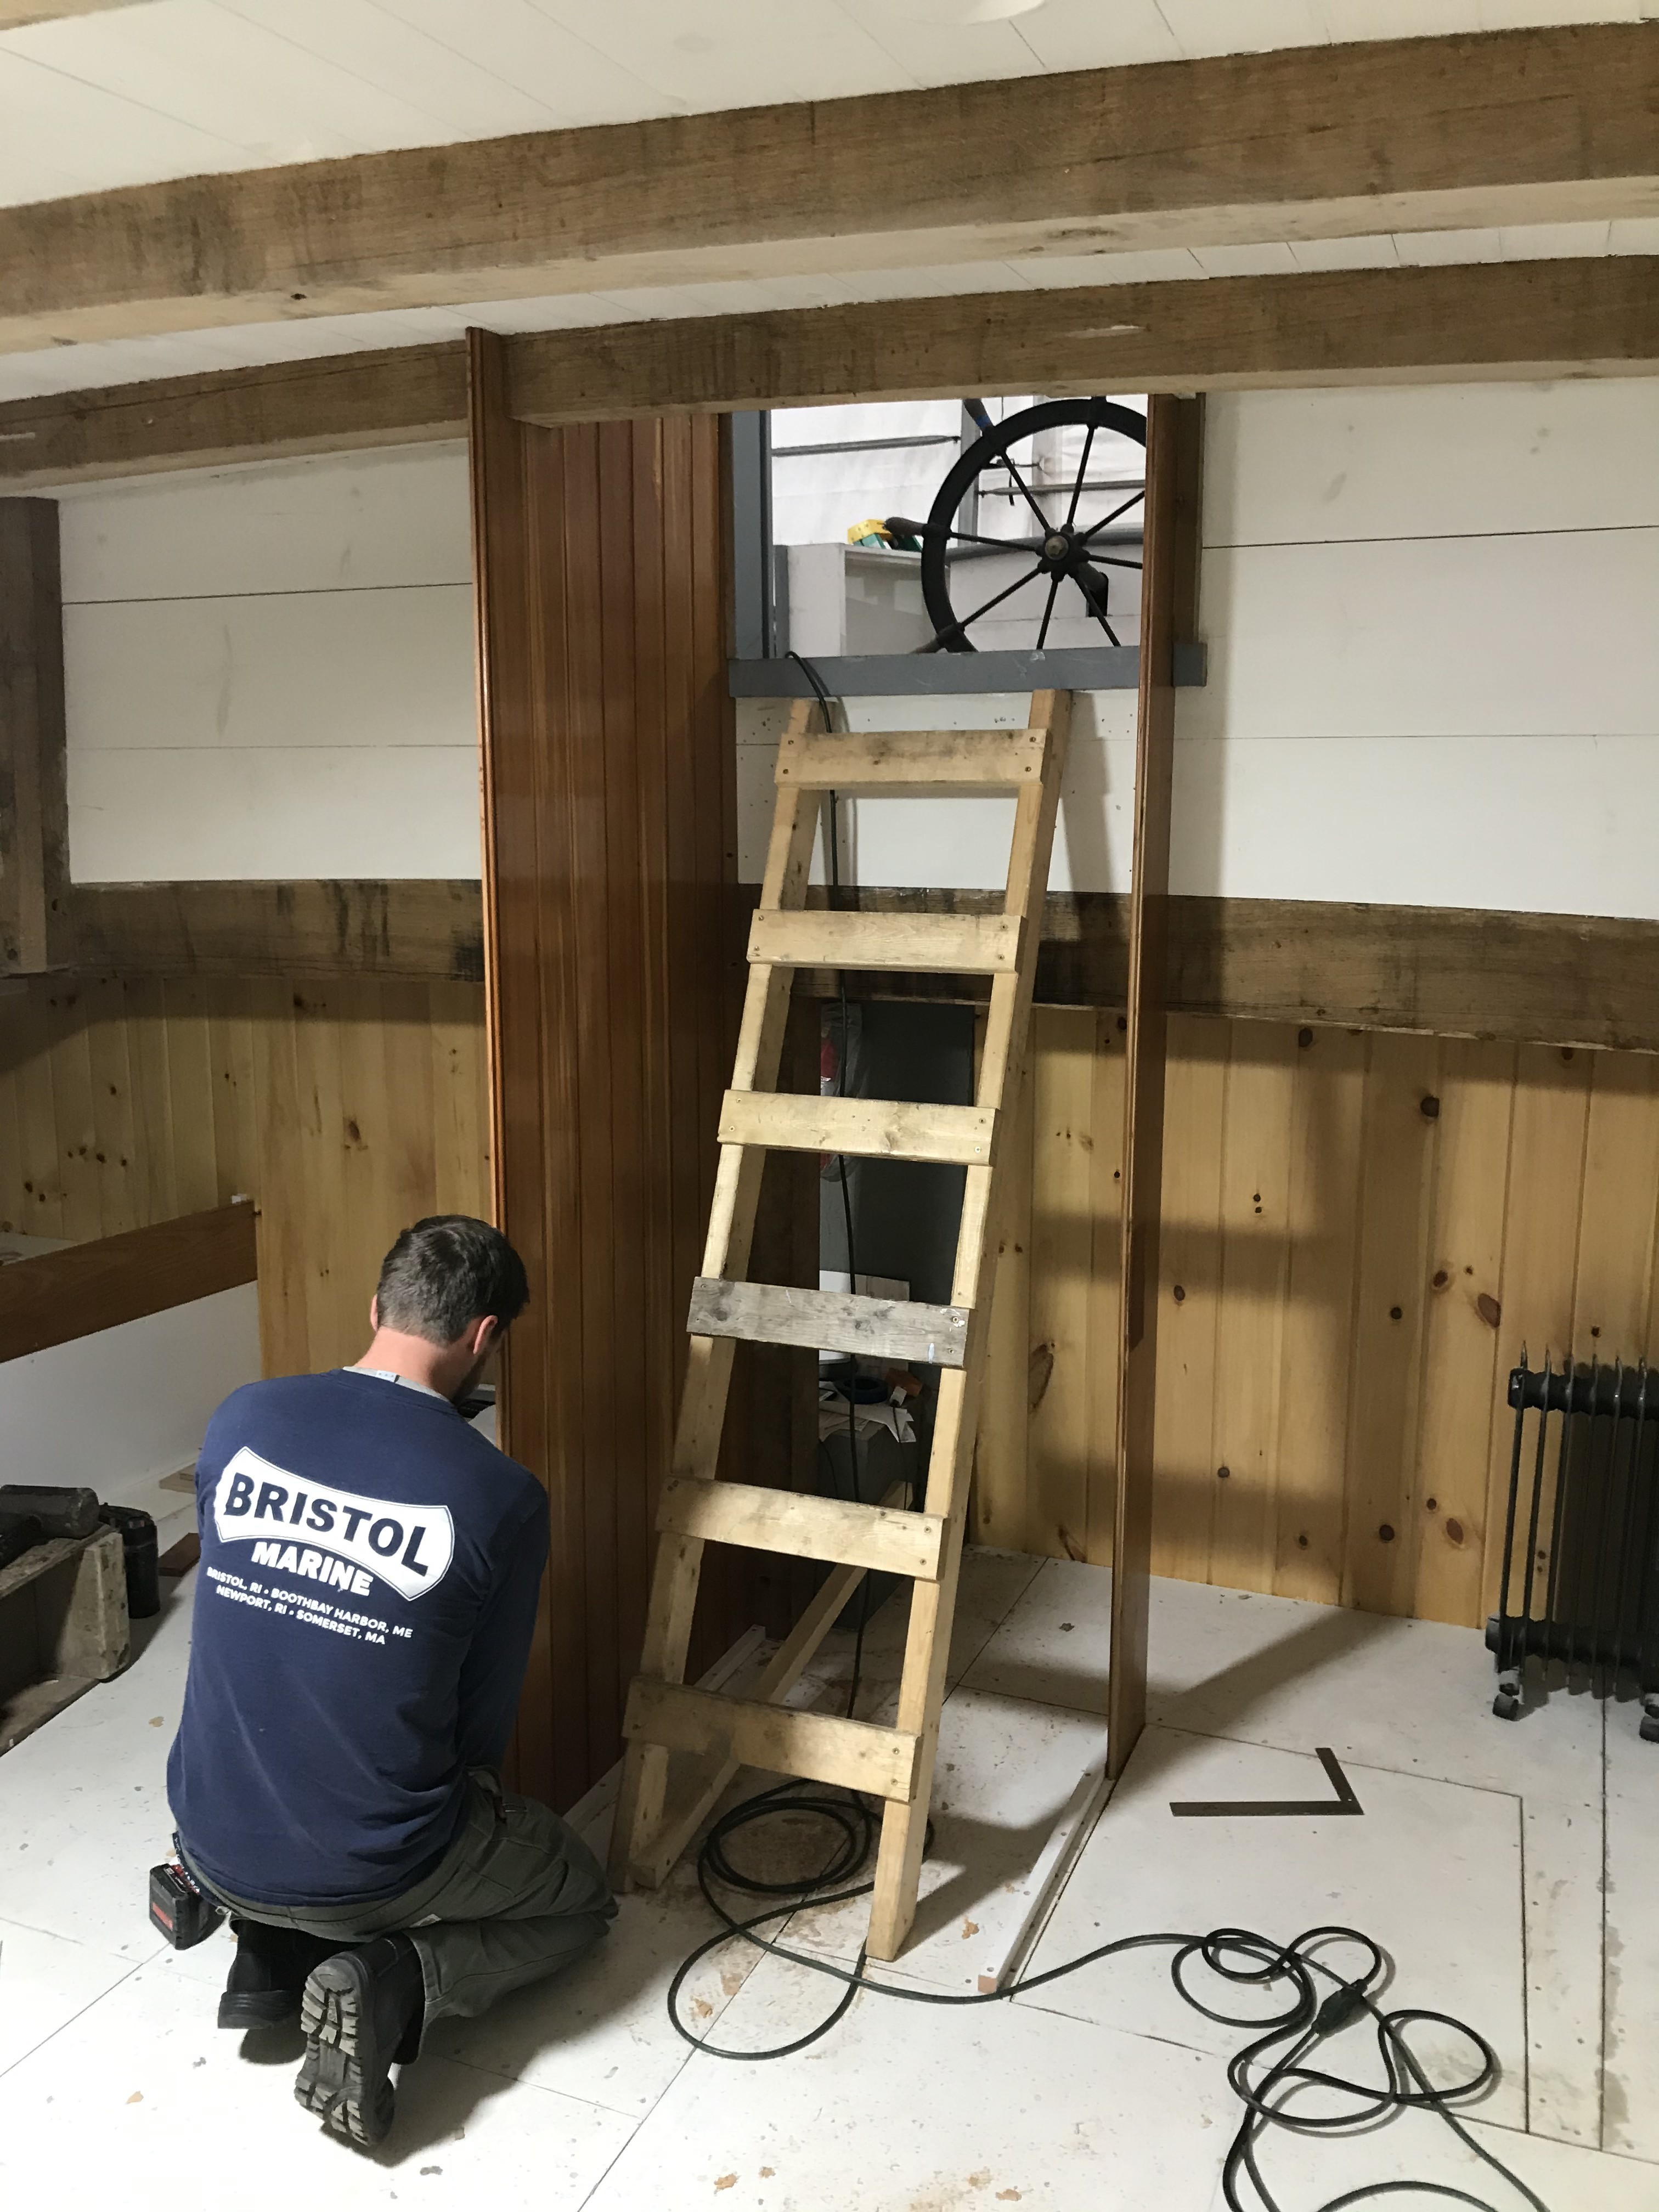 David Thorpe is seen here fitting tongue and groove paneling that will serve as the frame for a companionway ladder into the aft cabin from the deck.  You can see the original steering wheel from 1894 in the background.